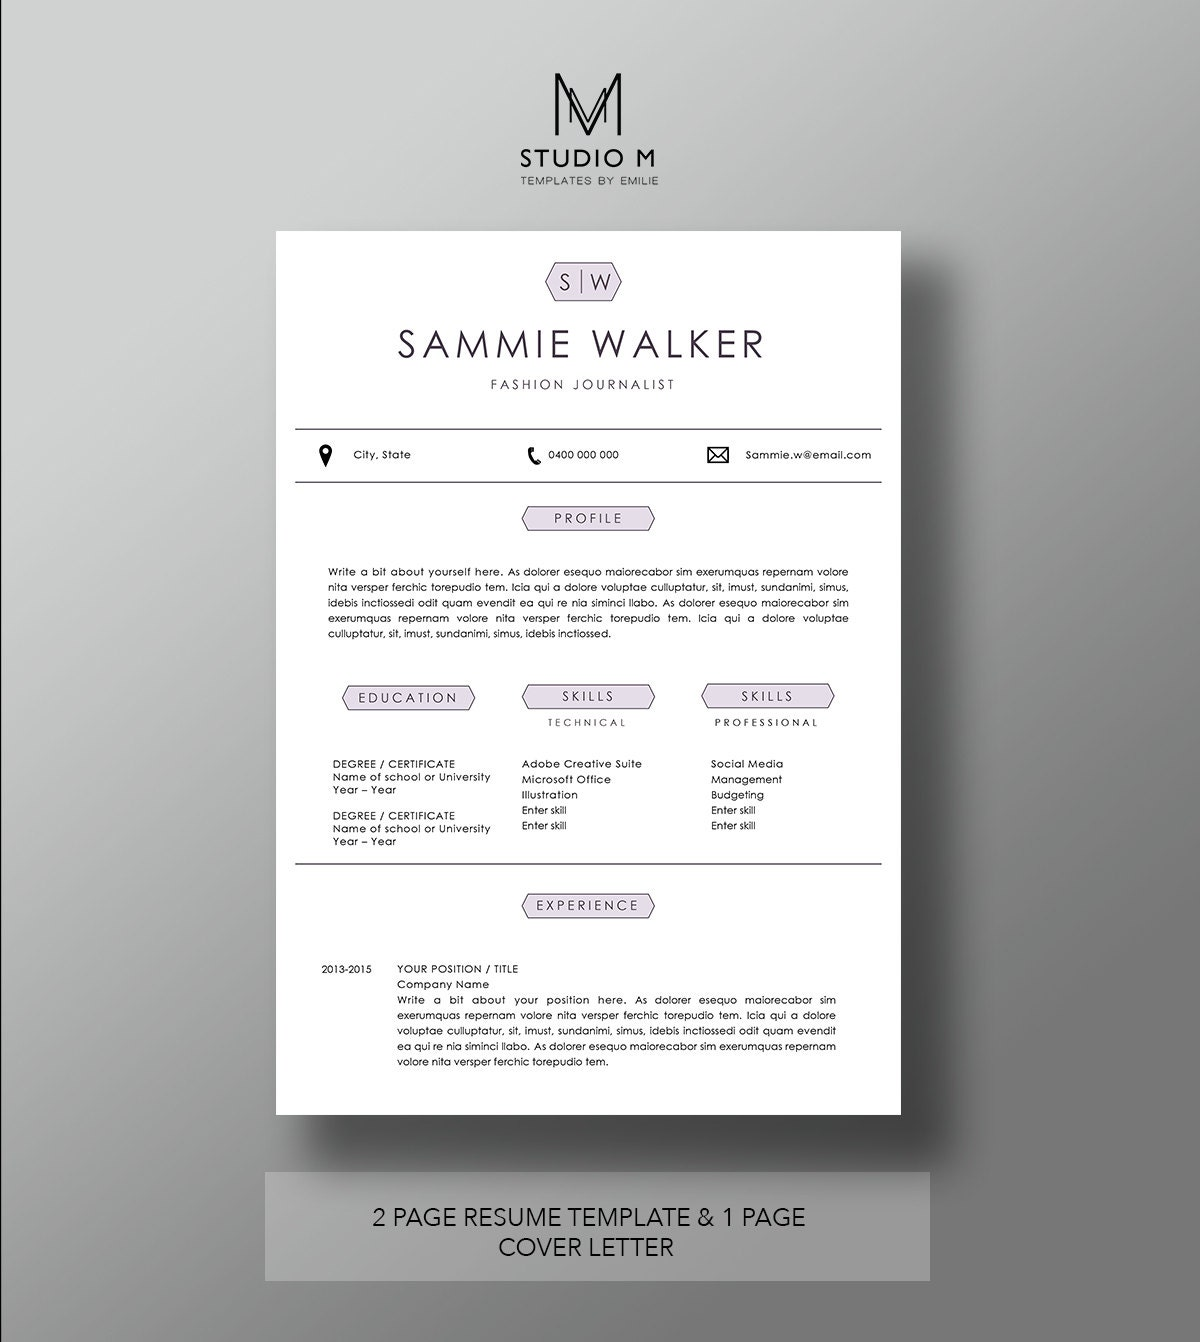 Modern resume template 2 page resume 1 page cover letter zoom biocorpaavc Choice Image